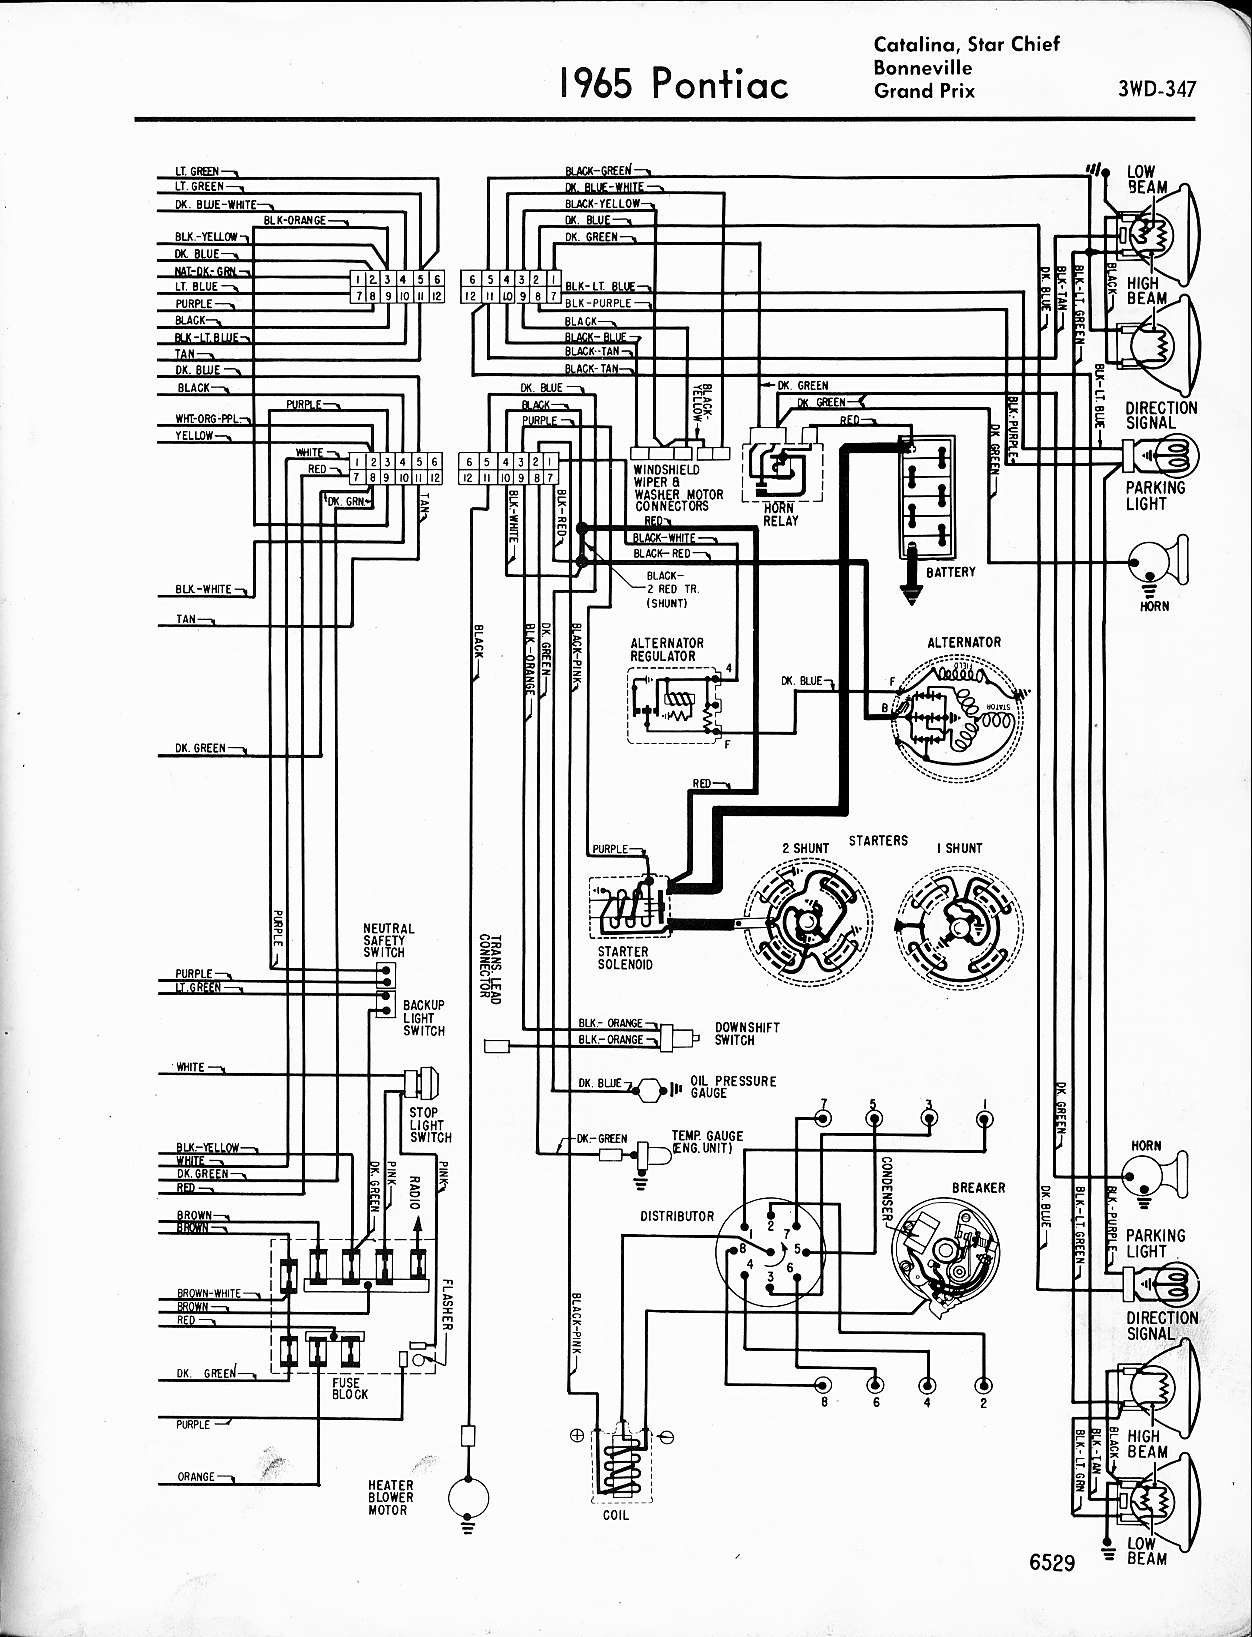 2001 grand prix wiring schematic